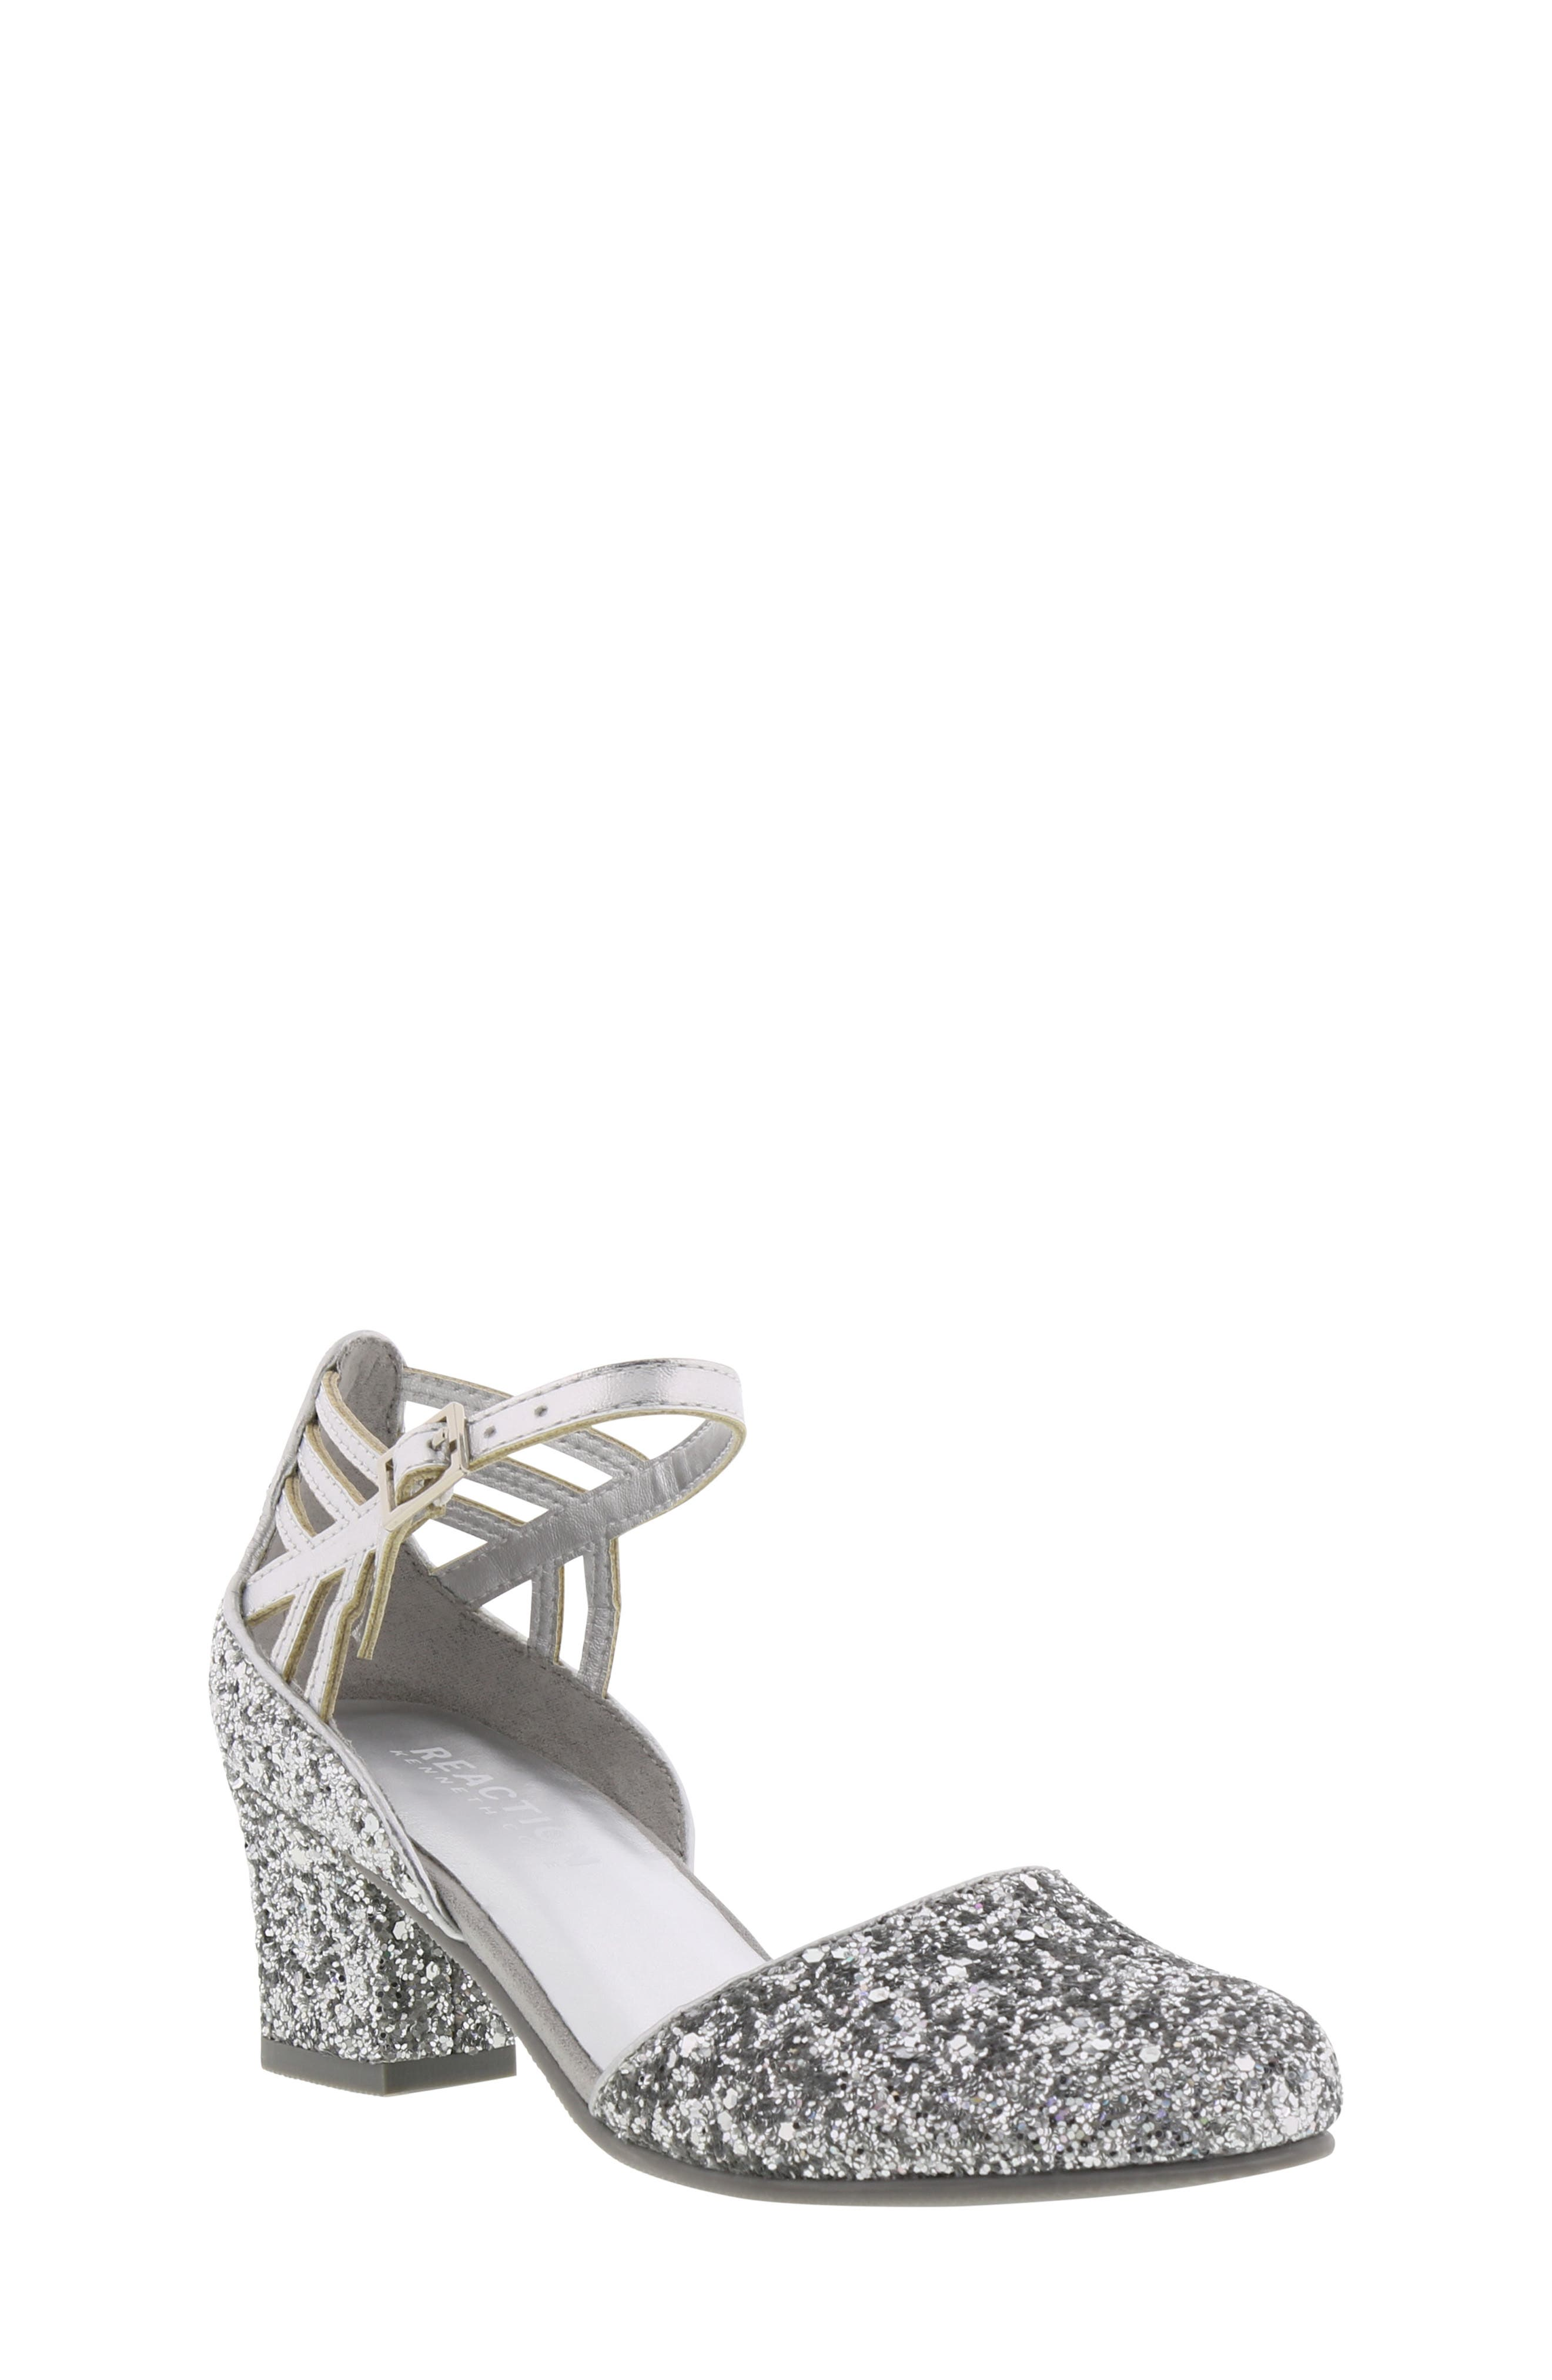 REACTION KENNETH COLE, Kenneth Cole New York Sarah Shine Pump, Main thumbnail 1, color, SILVER MULTI